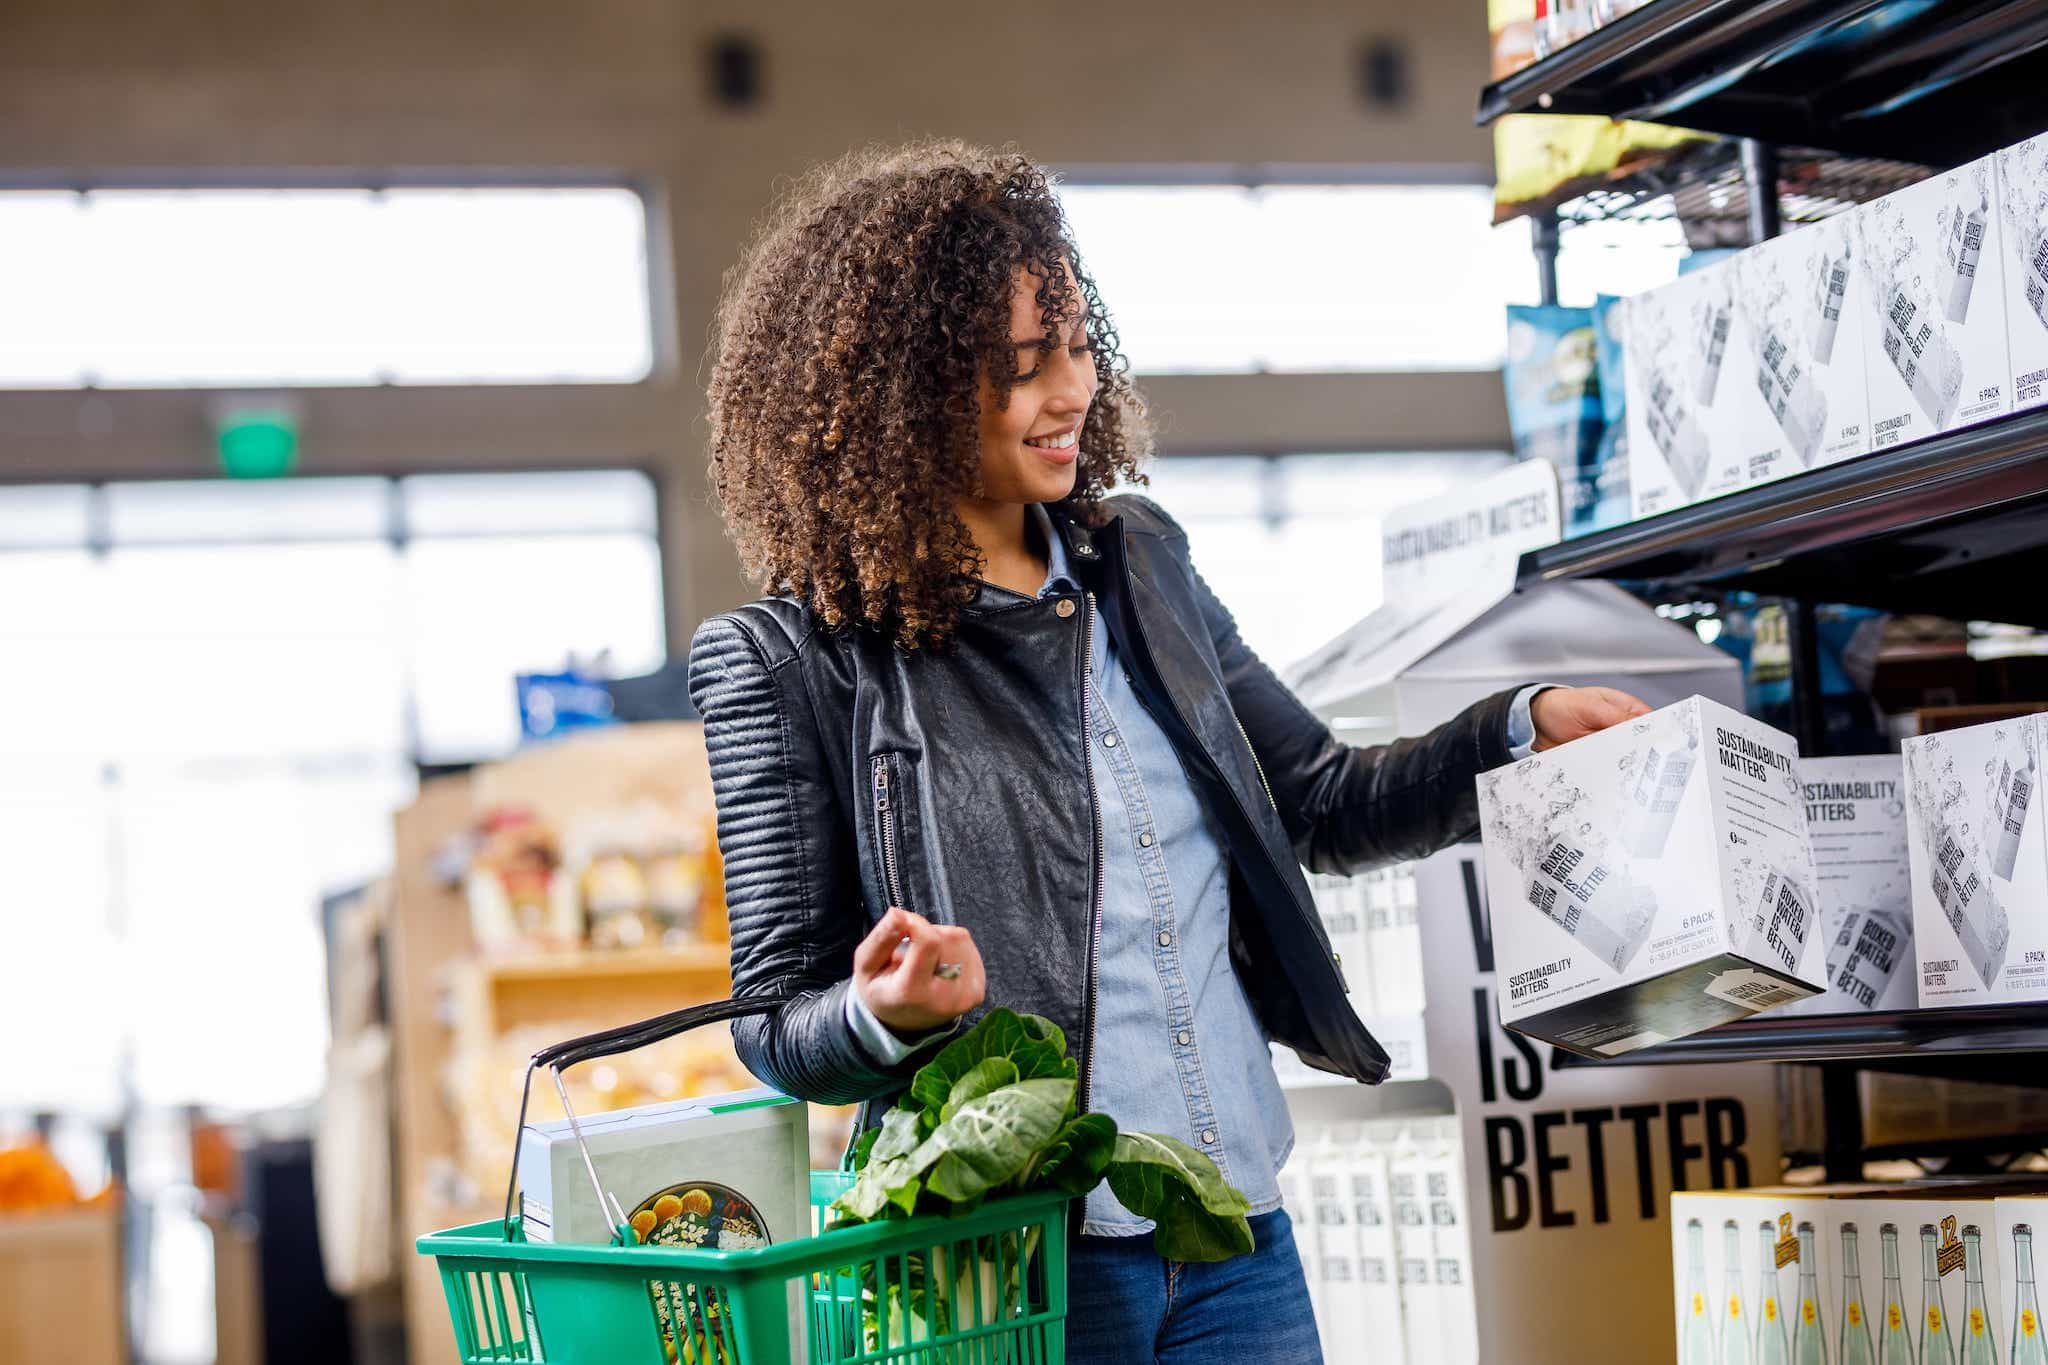 grocery app online grocery shopping trends grocery industry trends ecommerce grocery